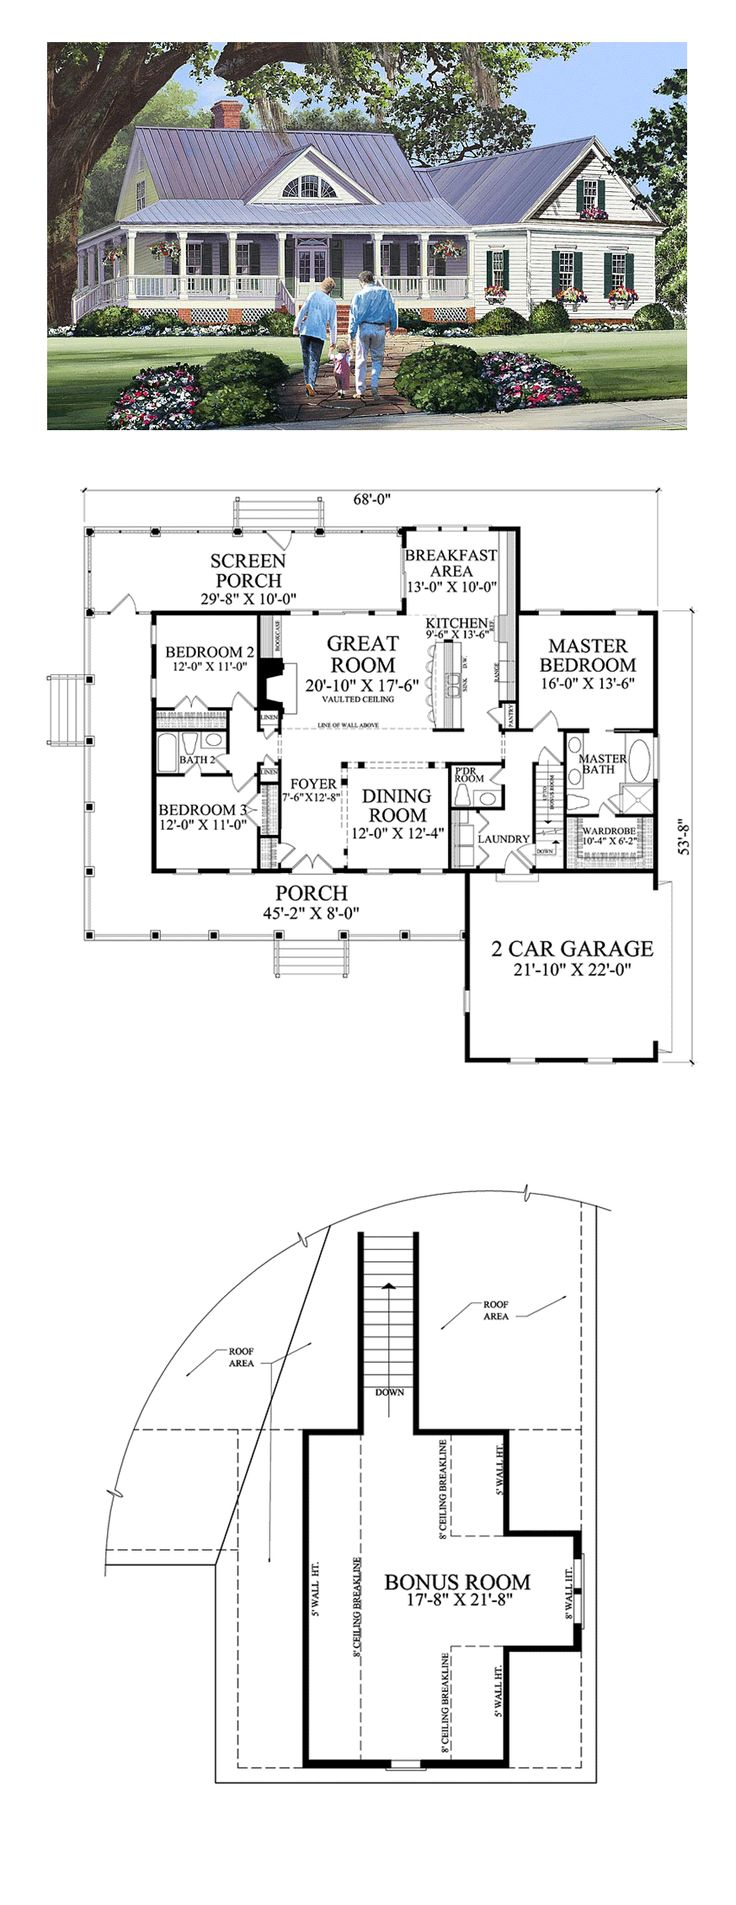 17 Best ideas about Best House Plans on Pinterest Unique house